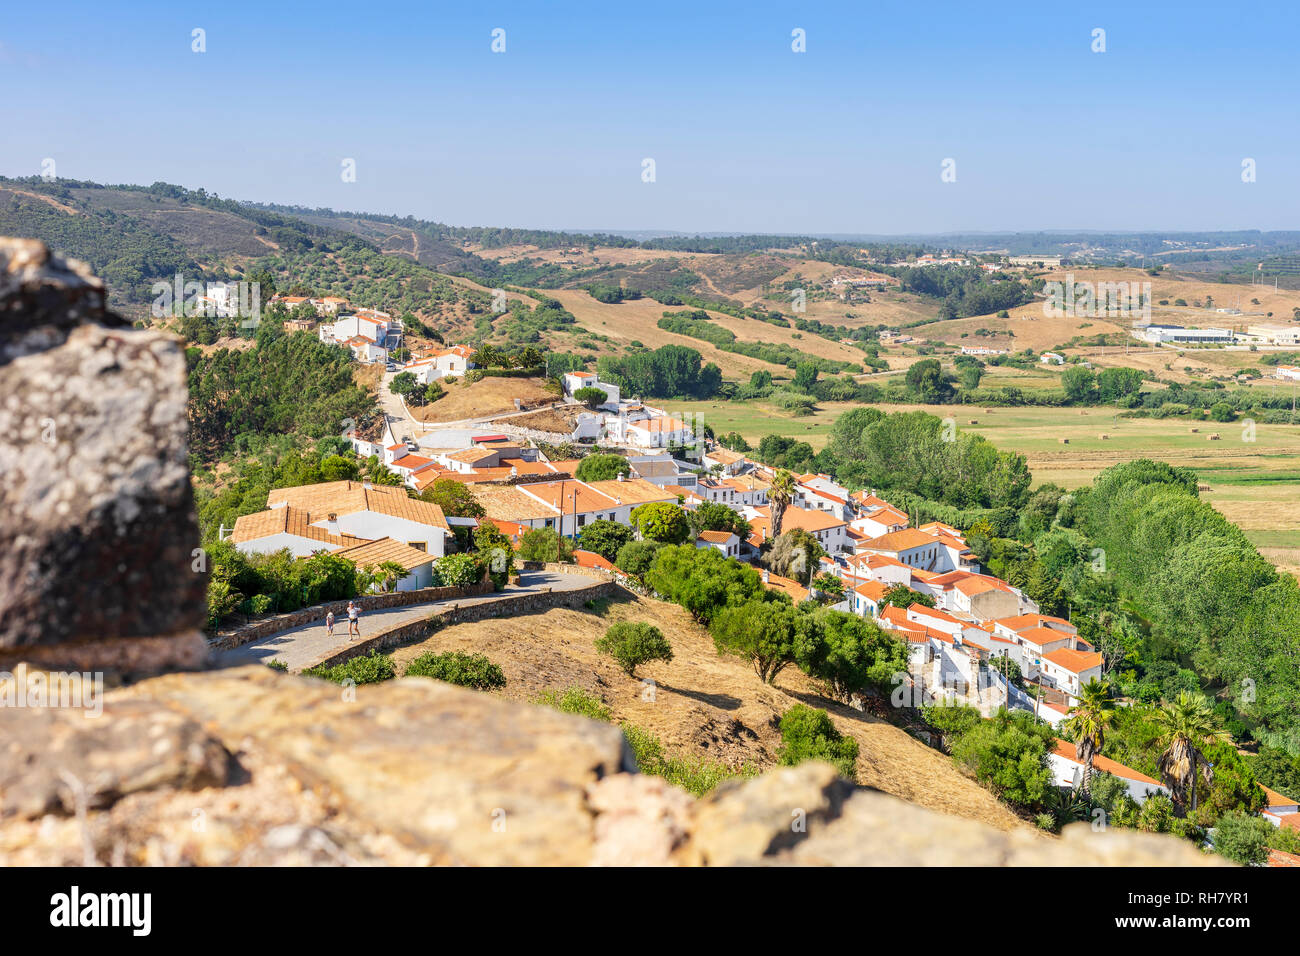 Charming Aljezur with the Moorish castle in foreground, Algarve, Portugal Stock Photo